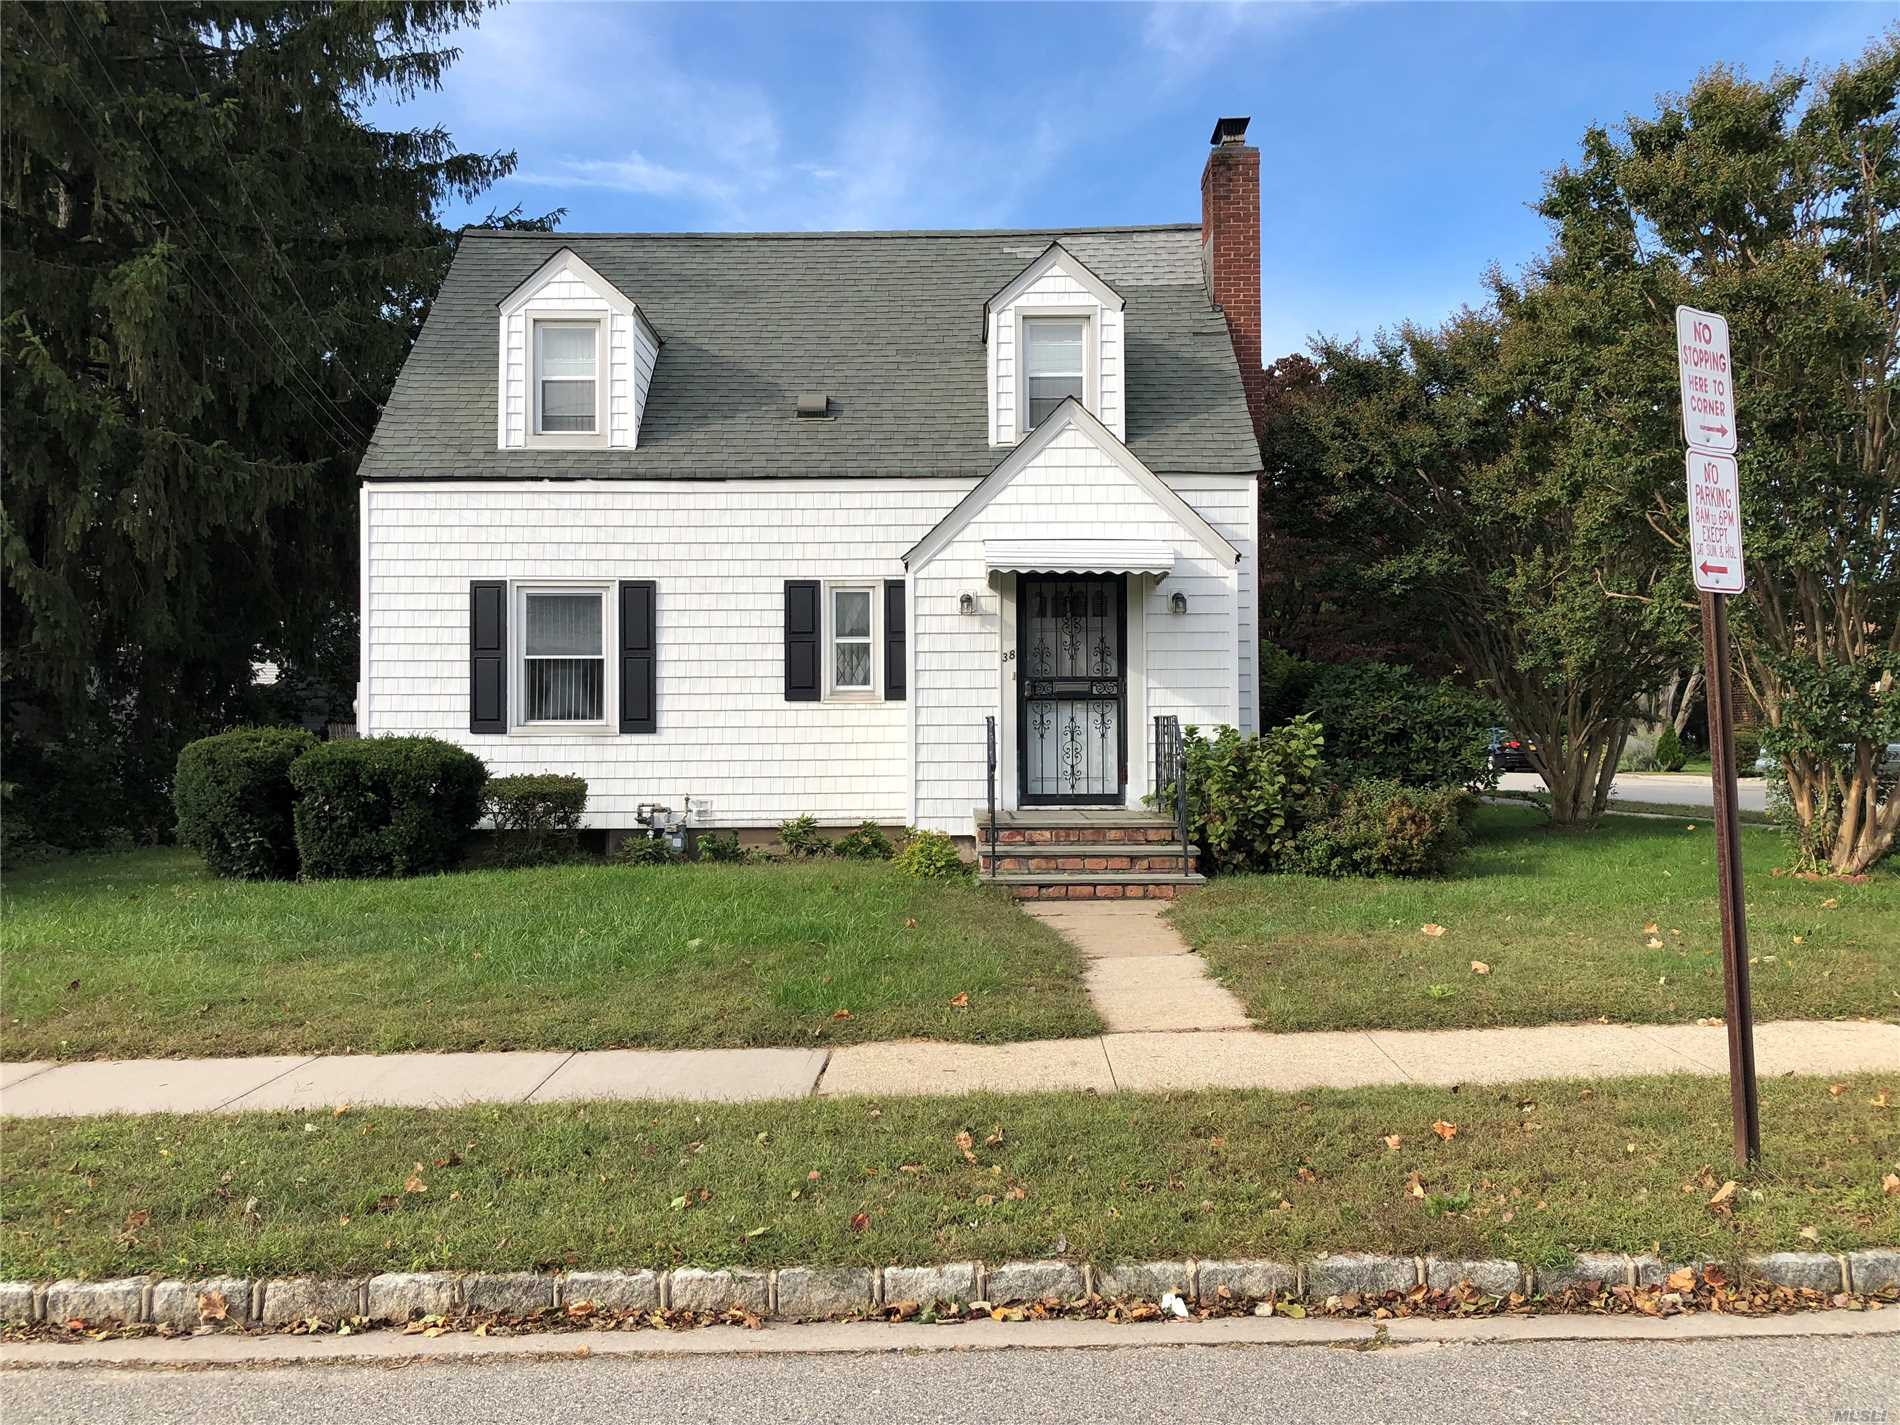 3 Br, 1.5 Bath, Full Finished Basement, Cape House. Car Garage Not Included.